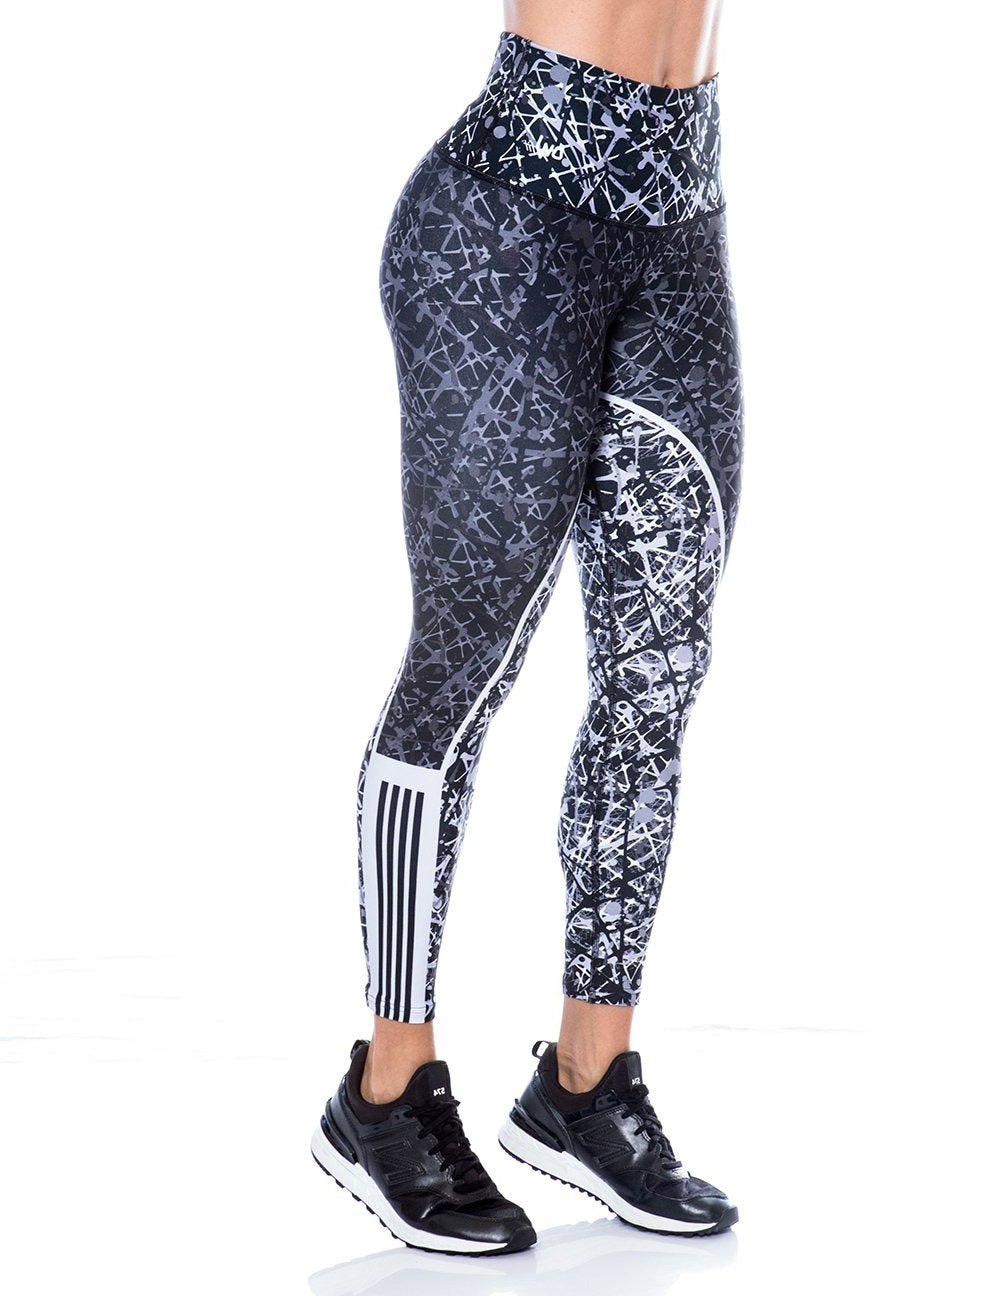 Wired black grey and white leggings - Bestyfit